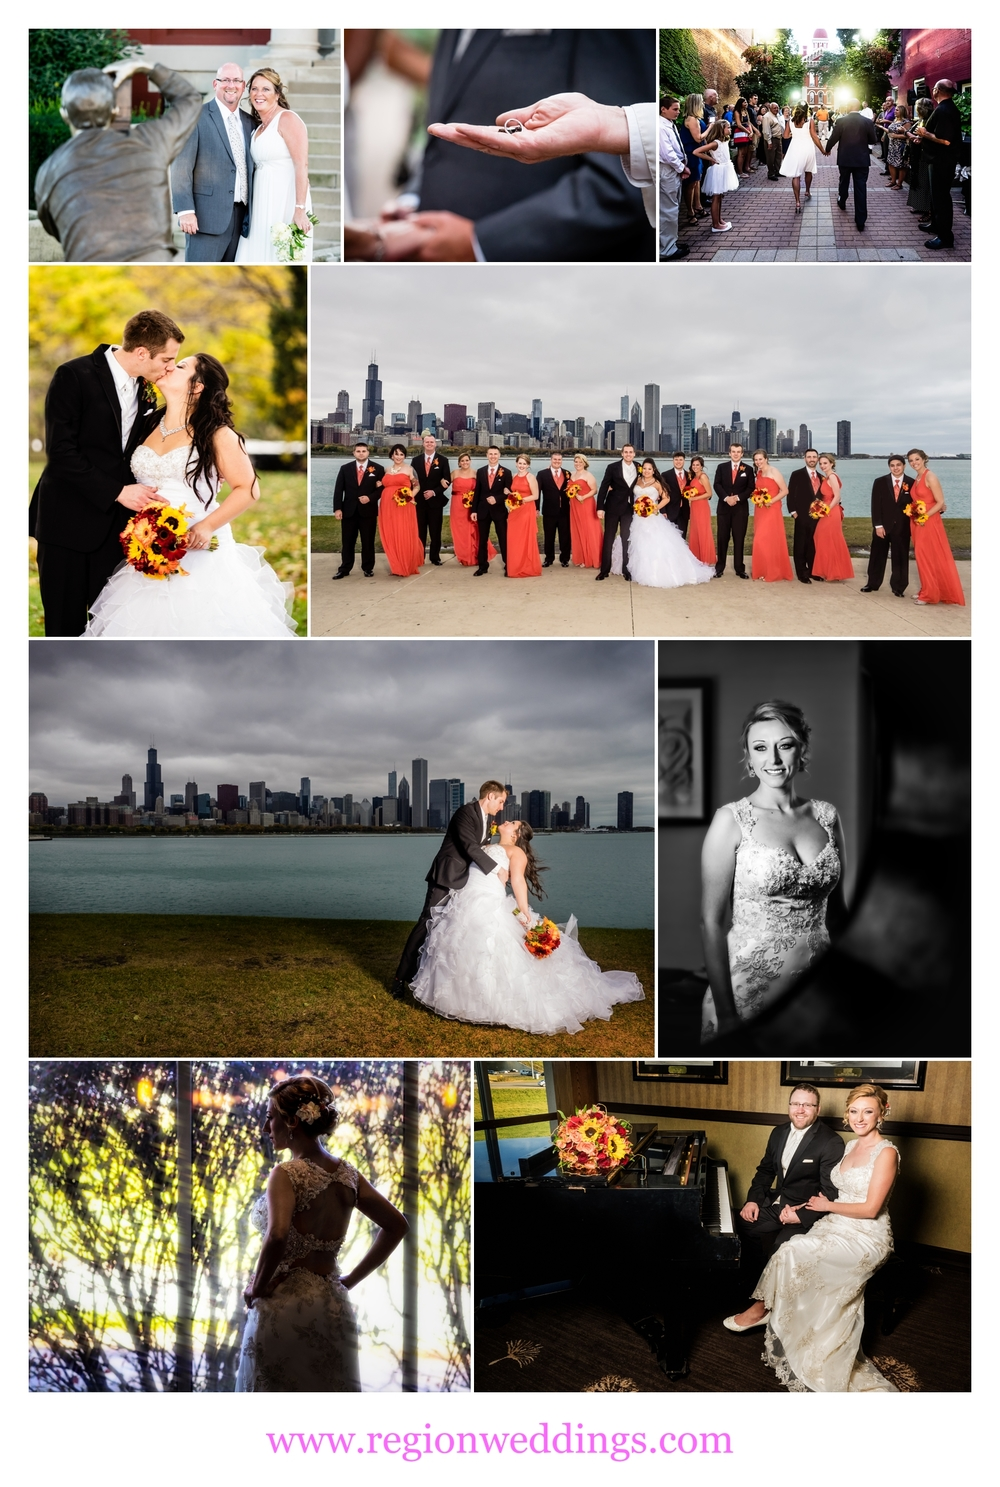 northwest-indiana-wedding-photography-collage11.jpg